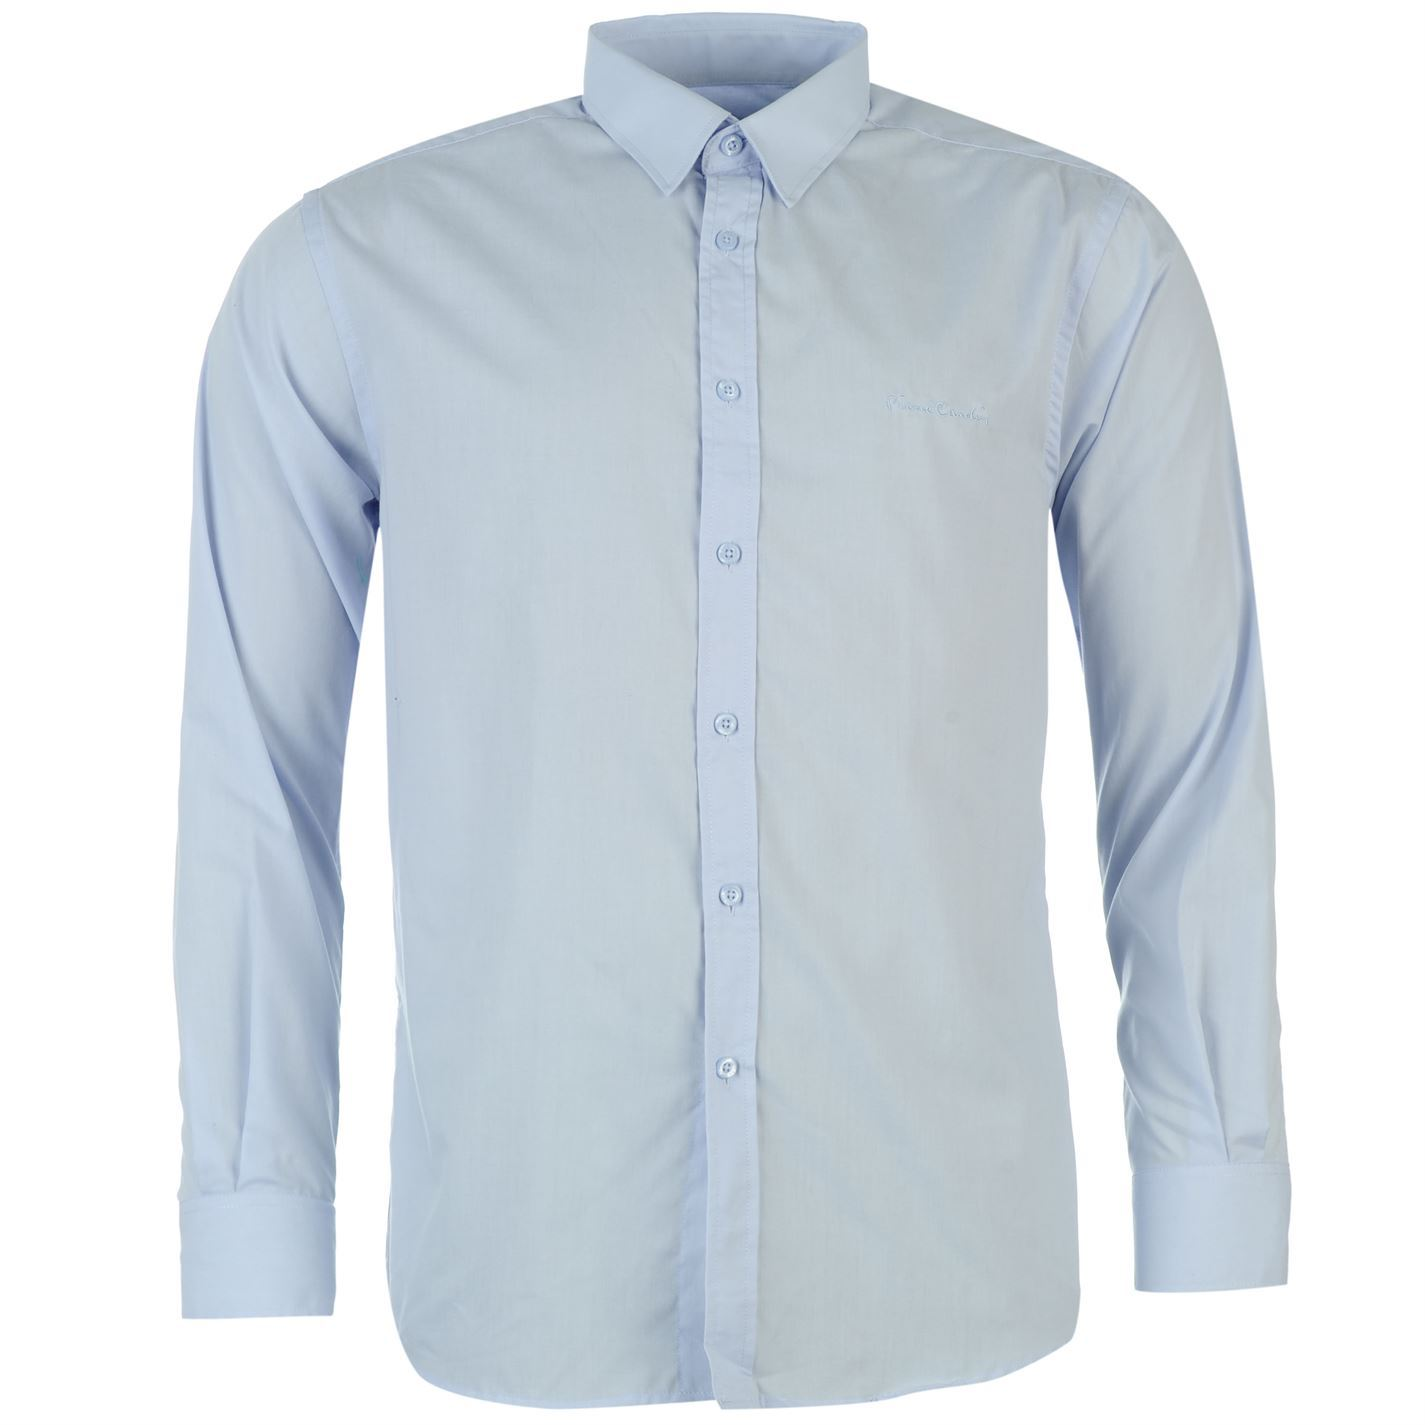 Pierre cardin mens long sleeve shirt top casual clothing for Best mens dress shirts online